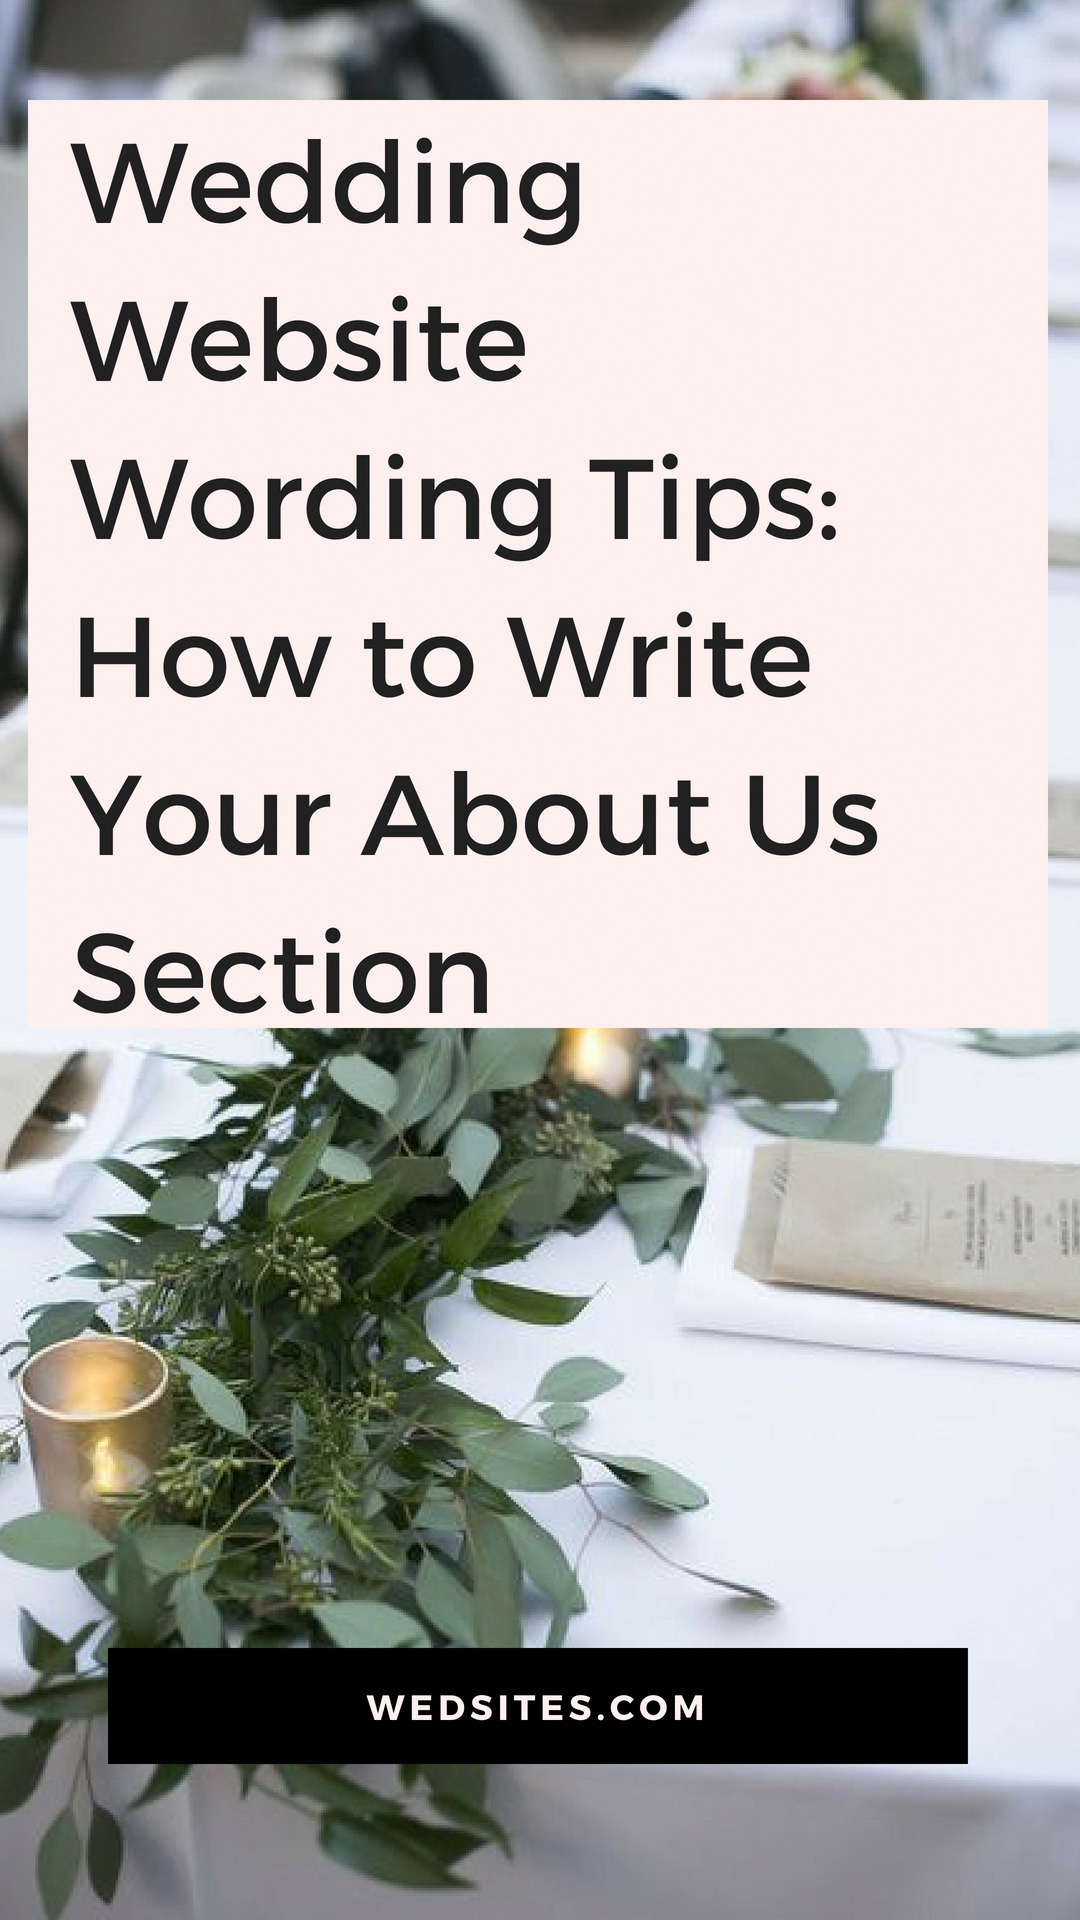 Keep reading for some helpful wording examples and